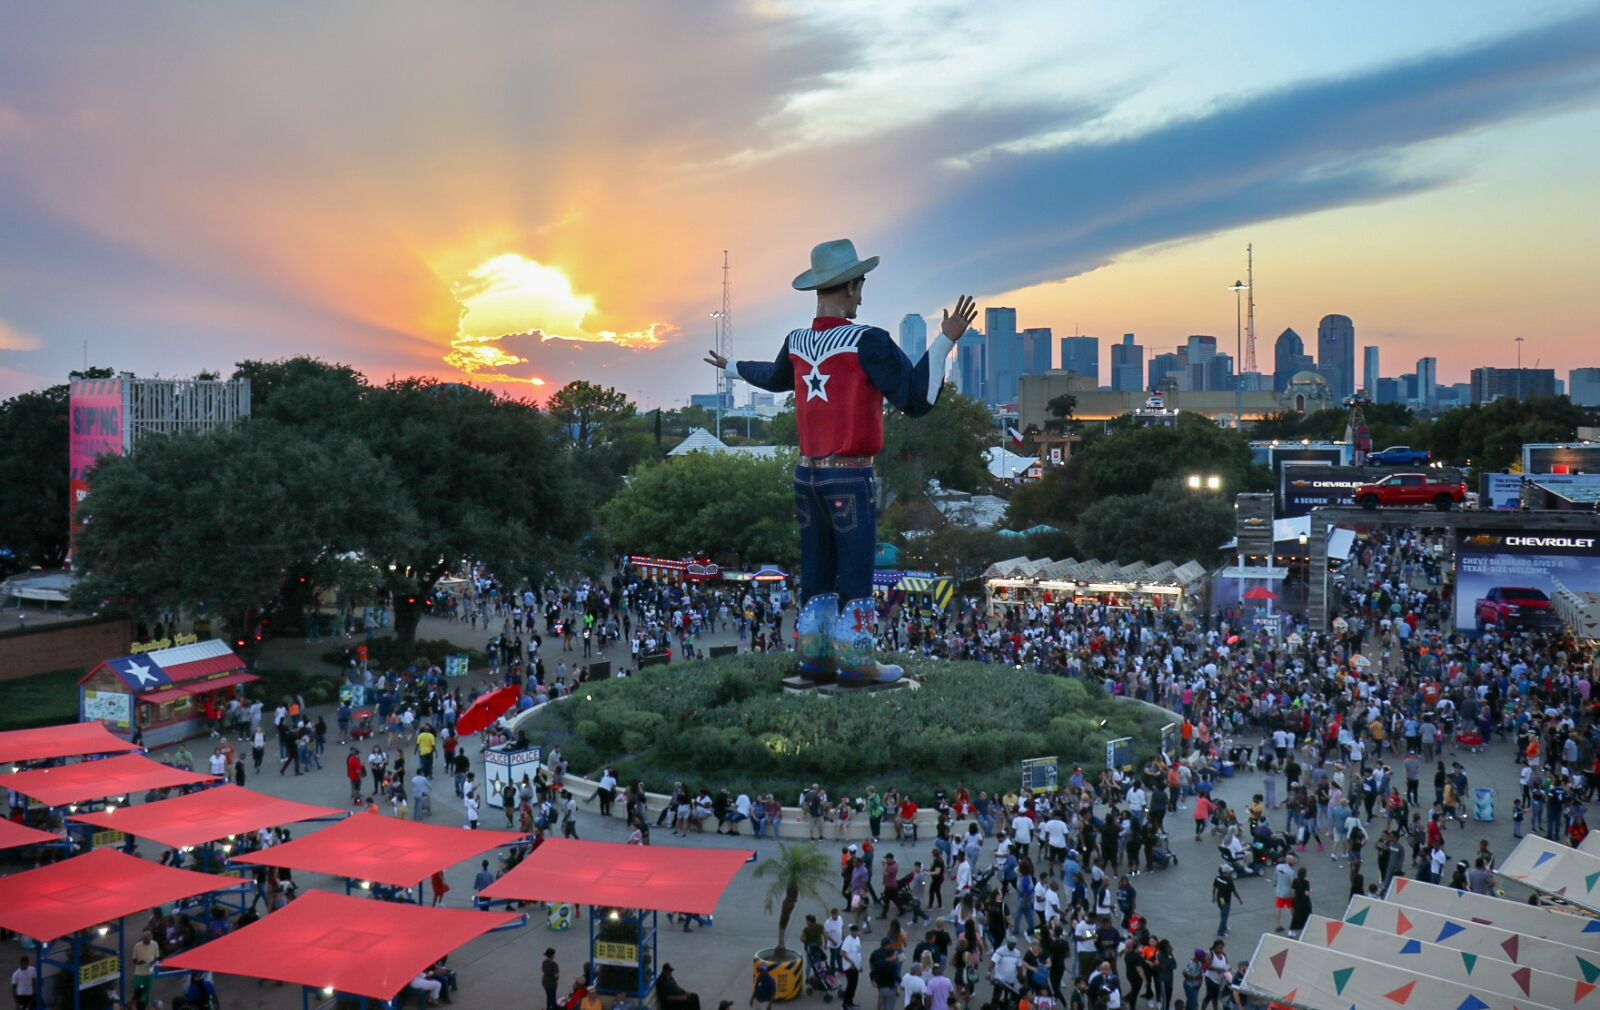 State Fair of Texas: What we loved and didn't about the fair 2019